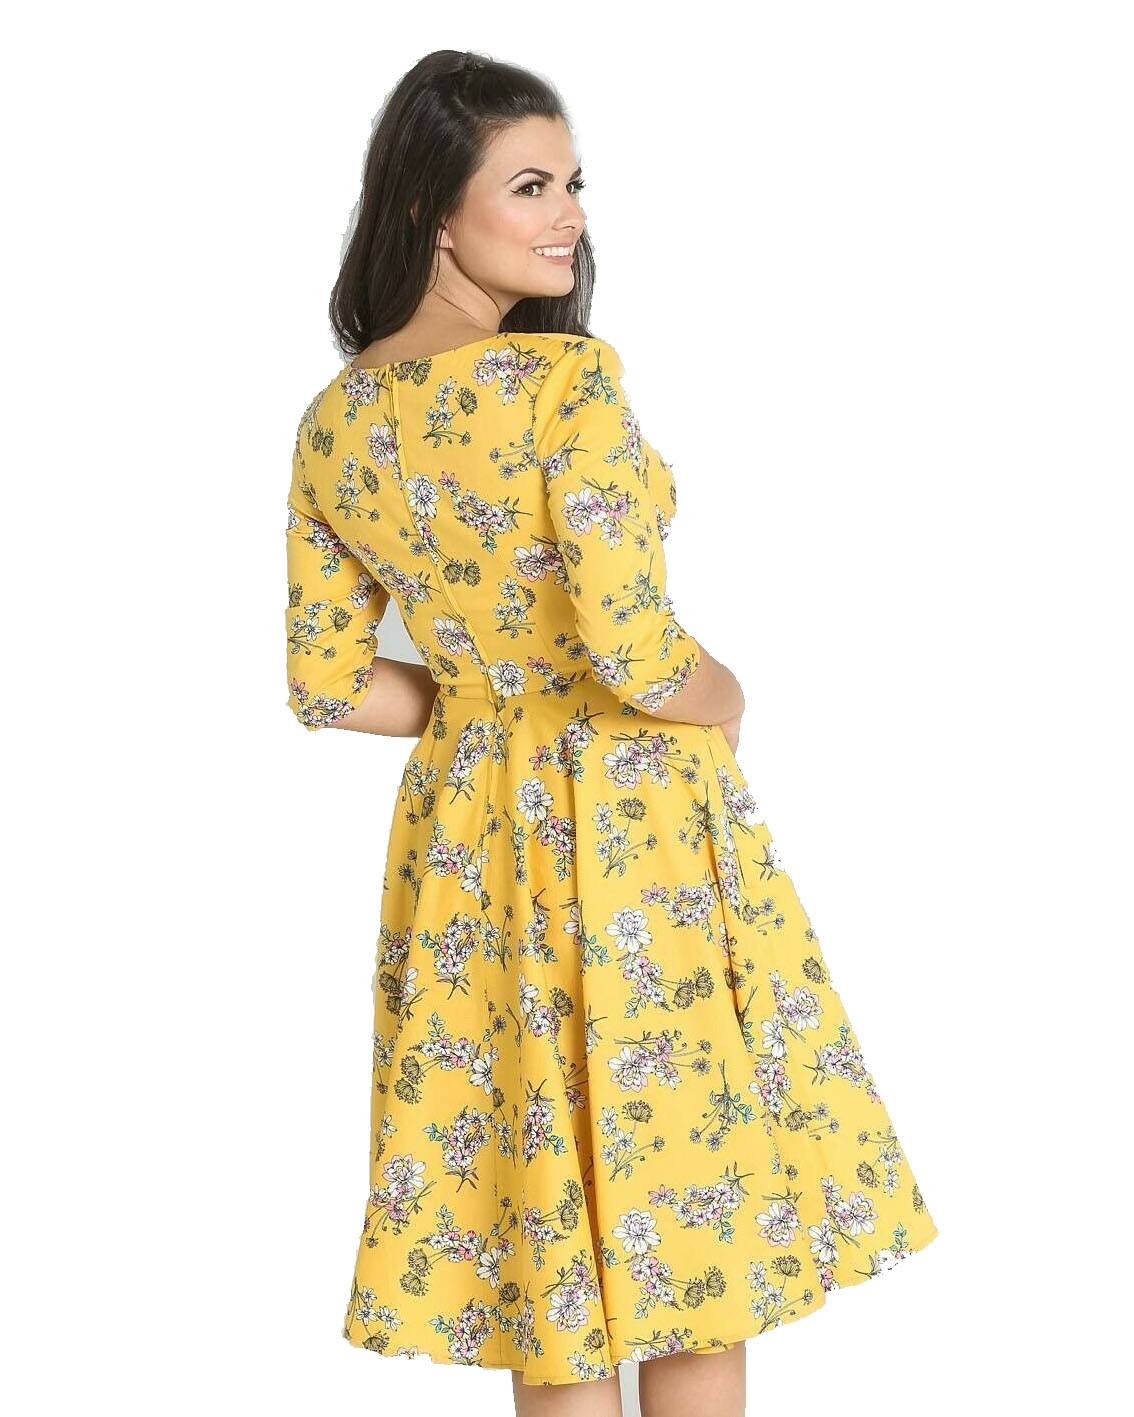 Hell-Bunny-40s-50s-Pin-Up-Vintage-Dress-MURIEL-Flowers-Yellow-All-Sizes thumbnail 21